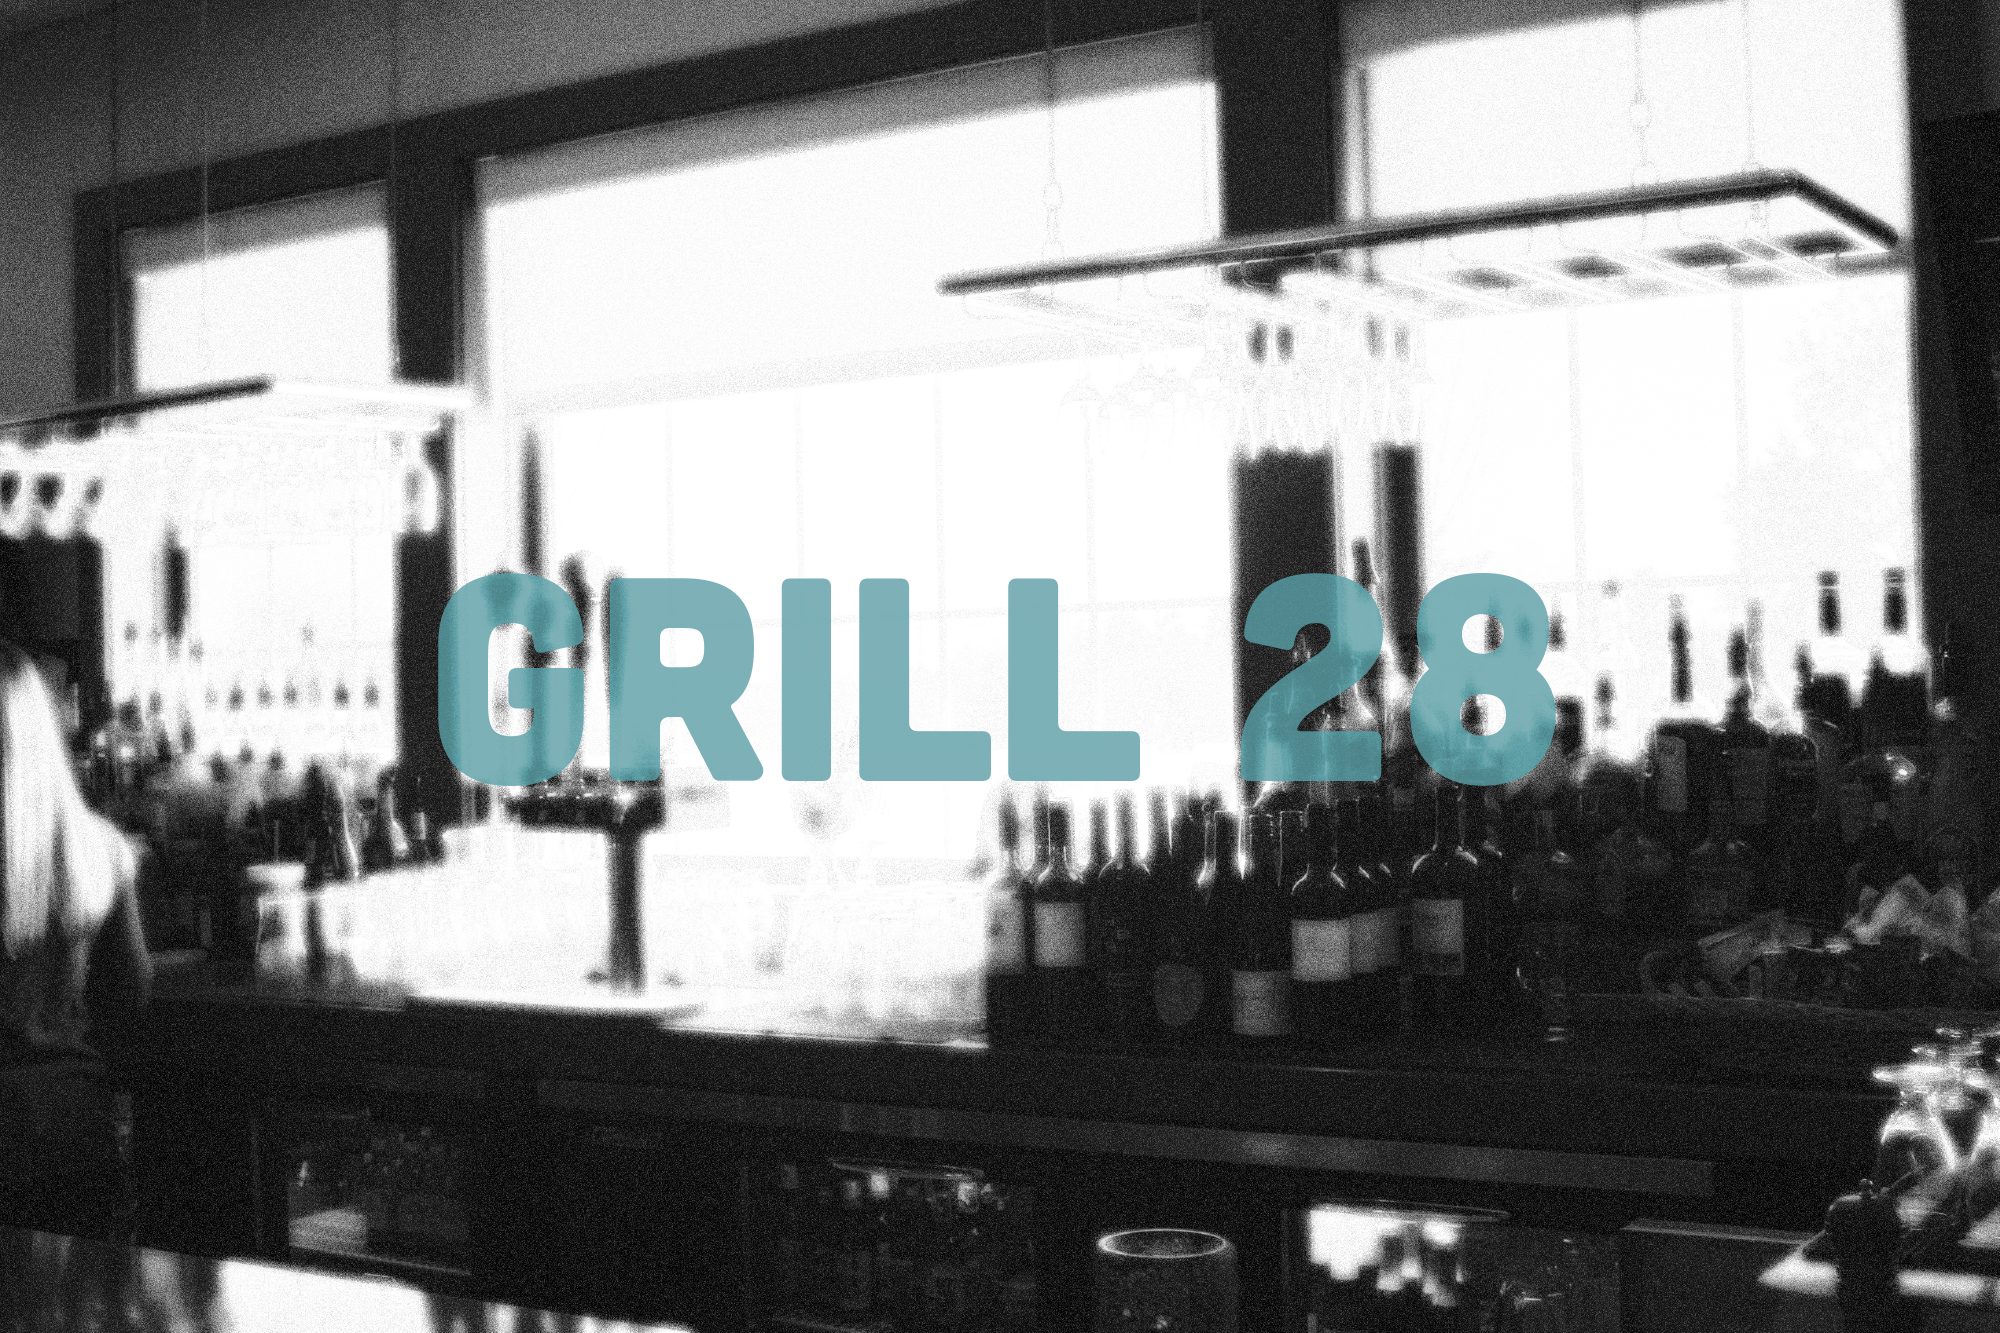 grill 28 cover final.png